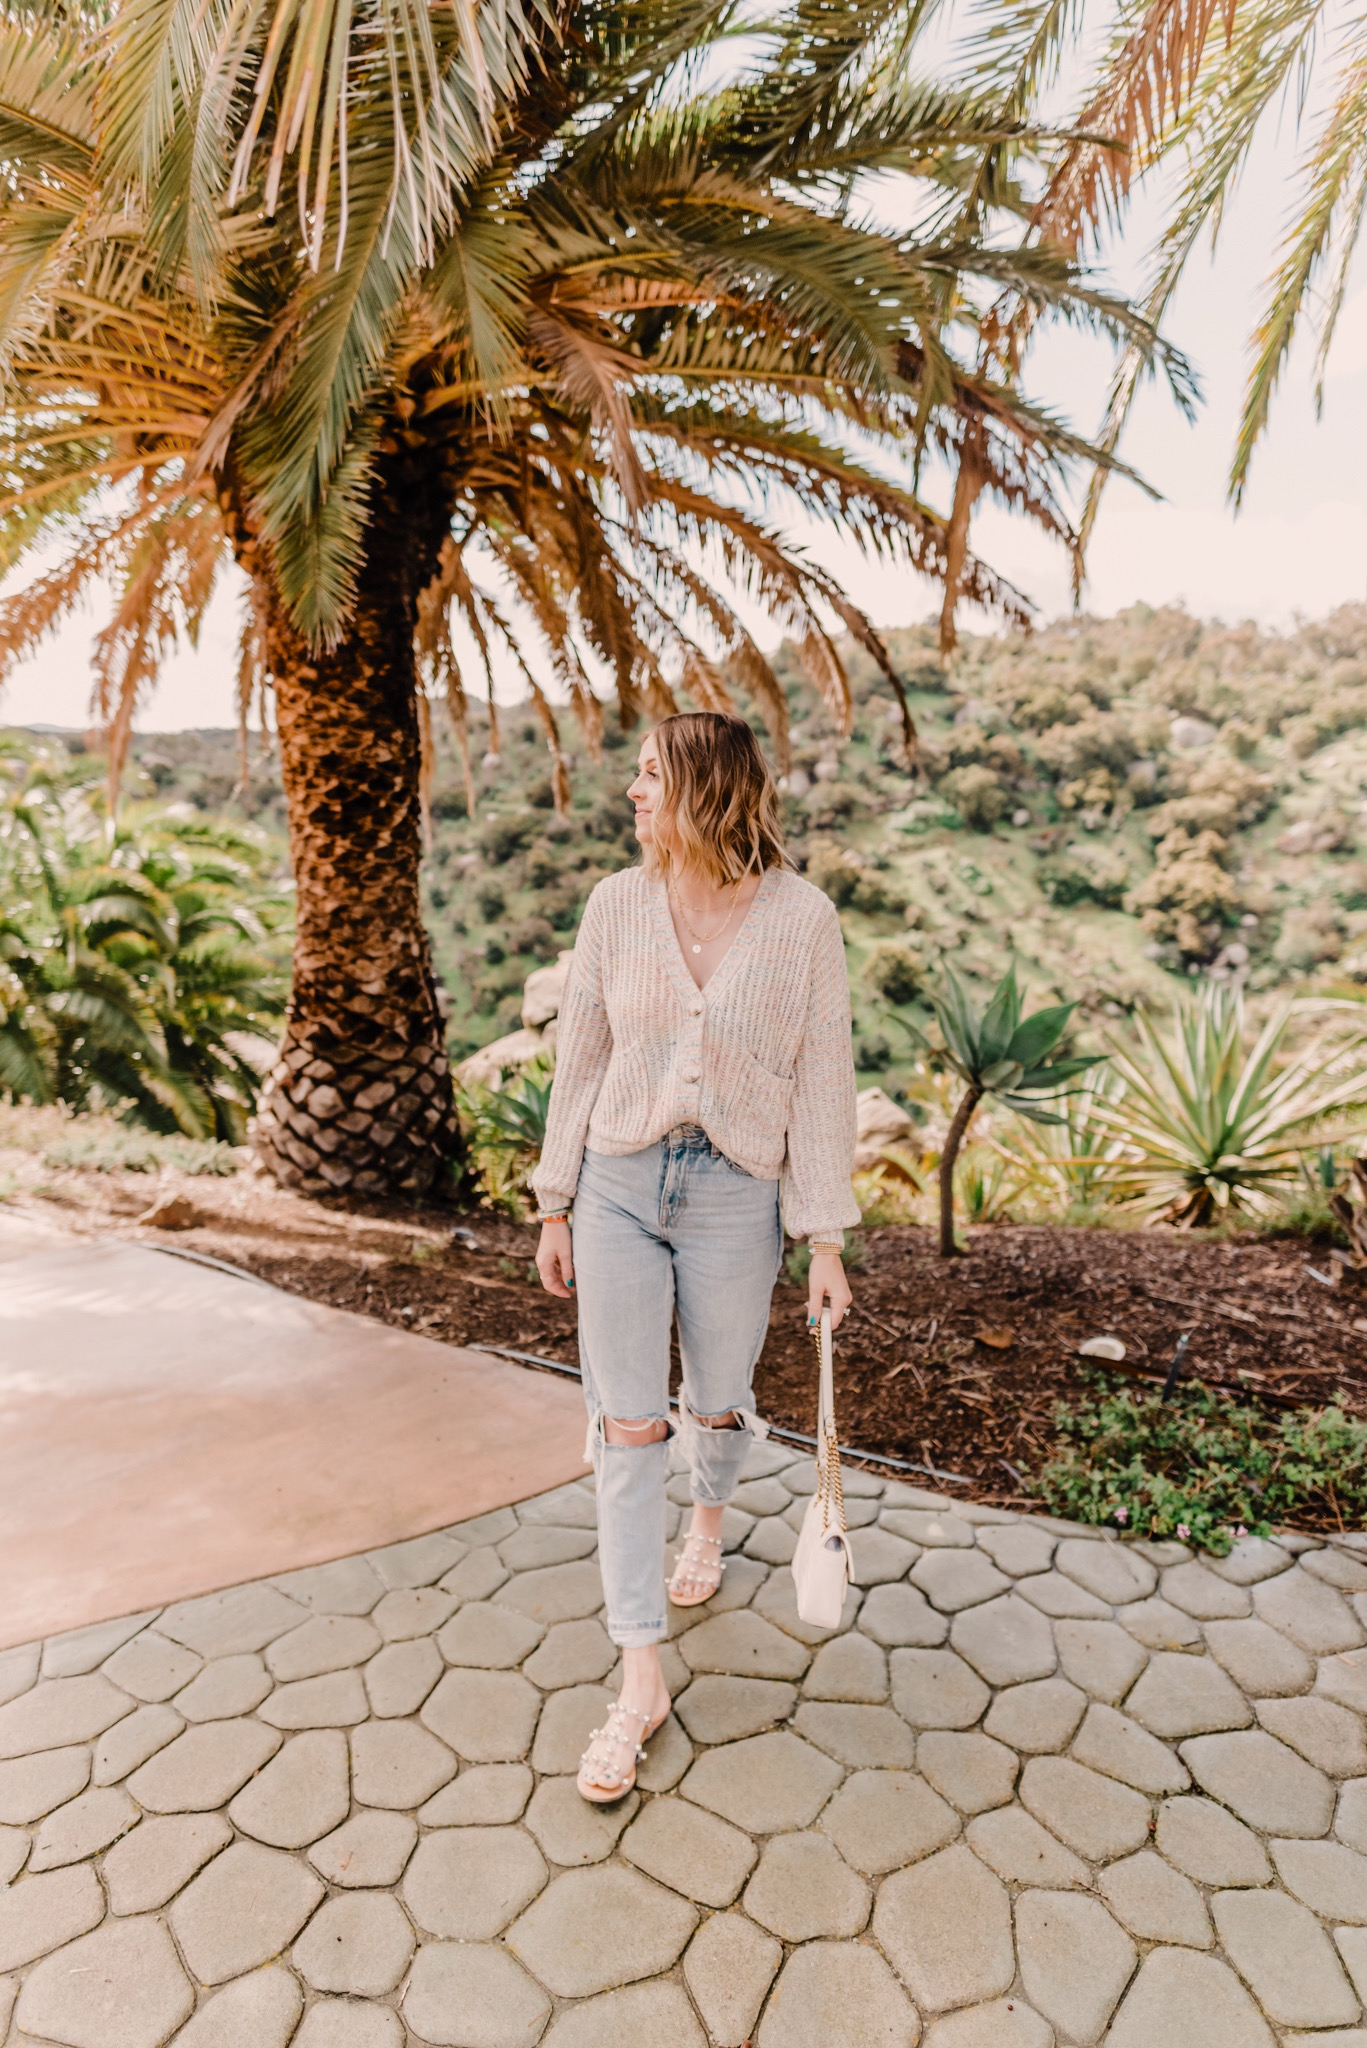 Spring arrivals featured by top San Diego fashion blog, Navy Grace. | 2020 Spring Arrivals by popular San Diego fashion blog, Navy Grace: image of a woman sanding outside under a palm tree and wearing a Shopbop BB Dakota Double Rainbow Cardigan, TopShop Bleach Wash Double Rip Mom Tapered Jeans, Schutz Yarin Strappy Sandals, Nordstrom Gucci Small Matelassé Leather Shoulder Bag, and Gorjana Parker Wrap Necklace.